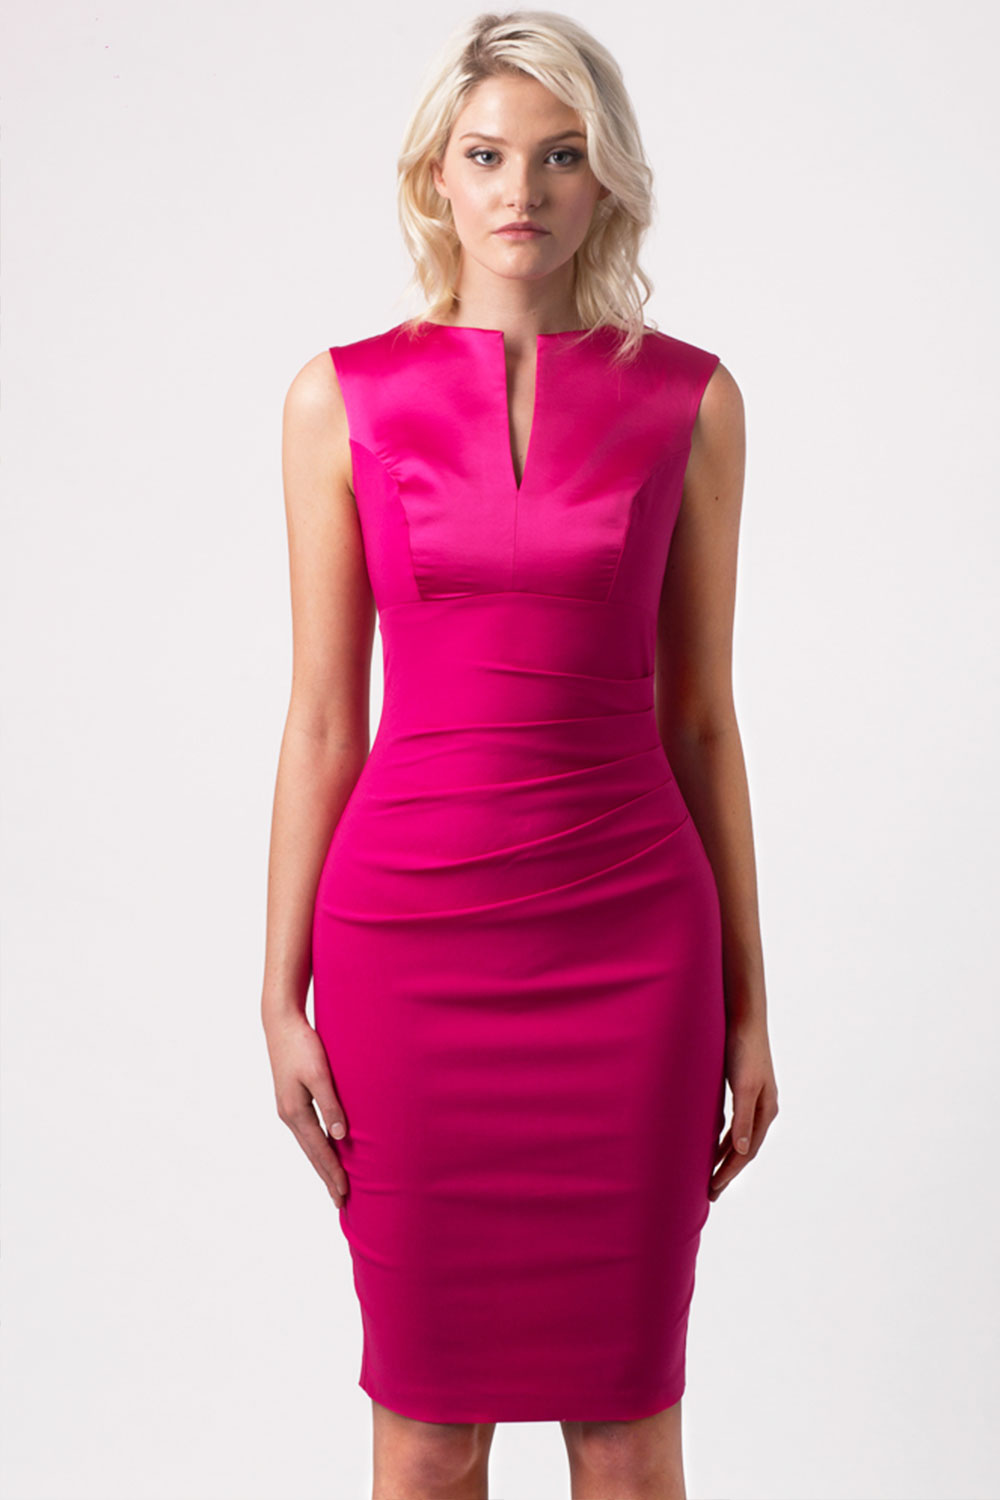 Hybrid Fashion 1040 Covina Pink Bodycon Dress